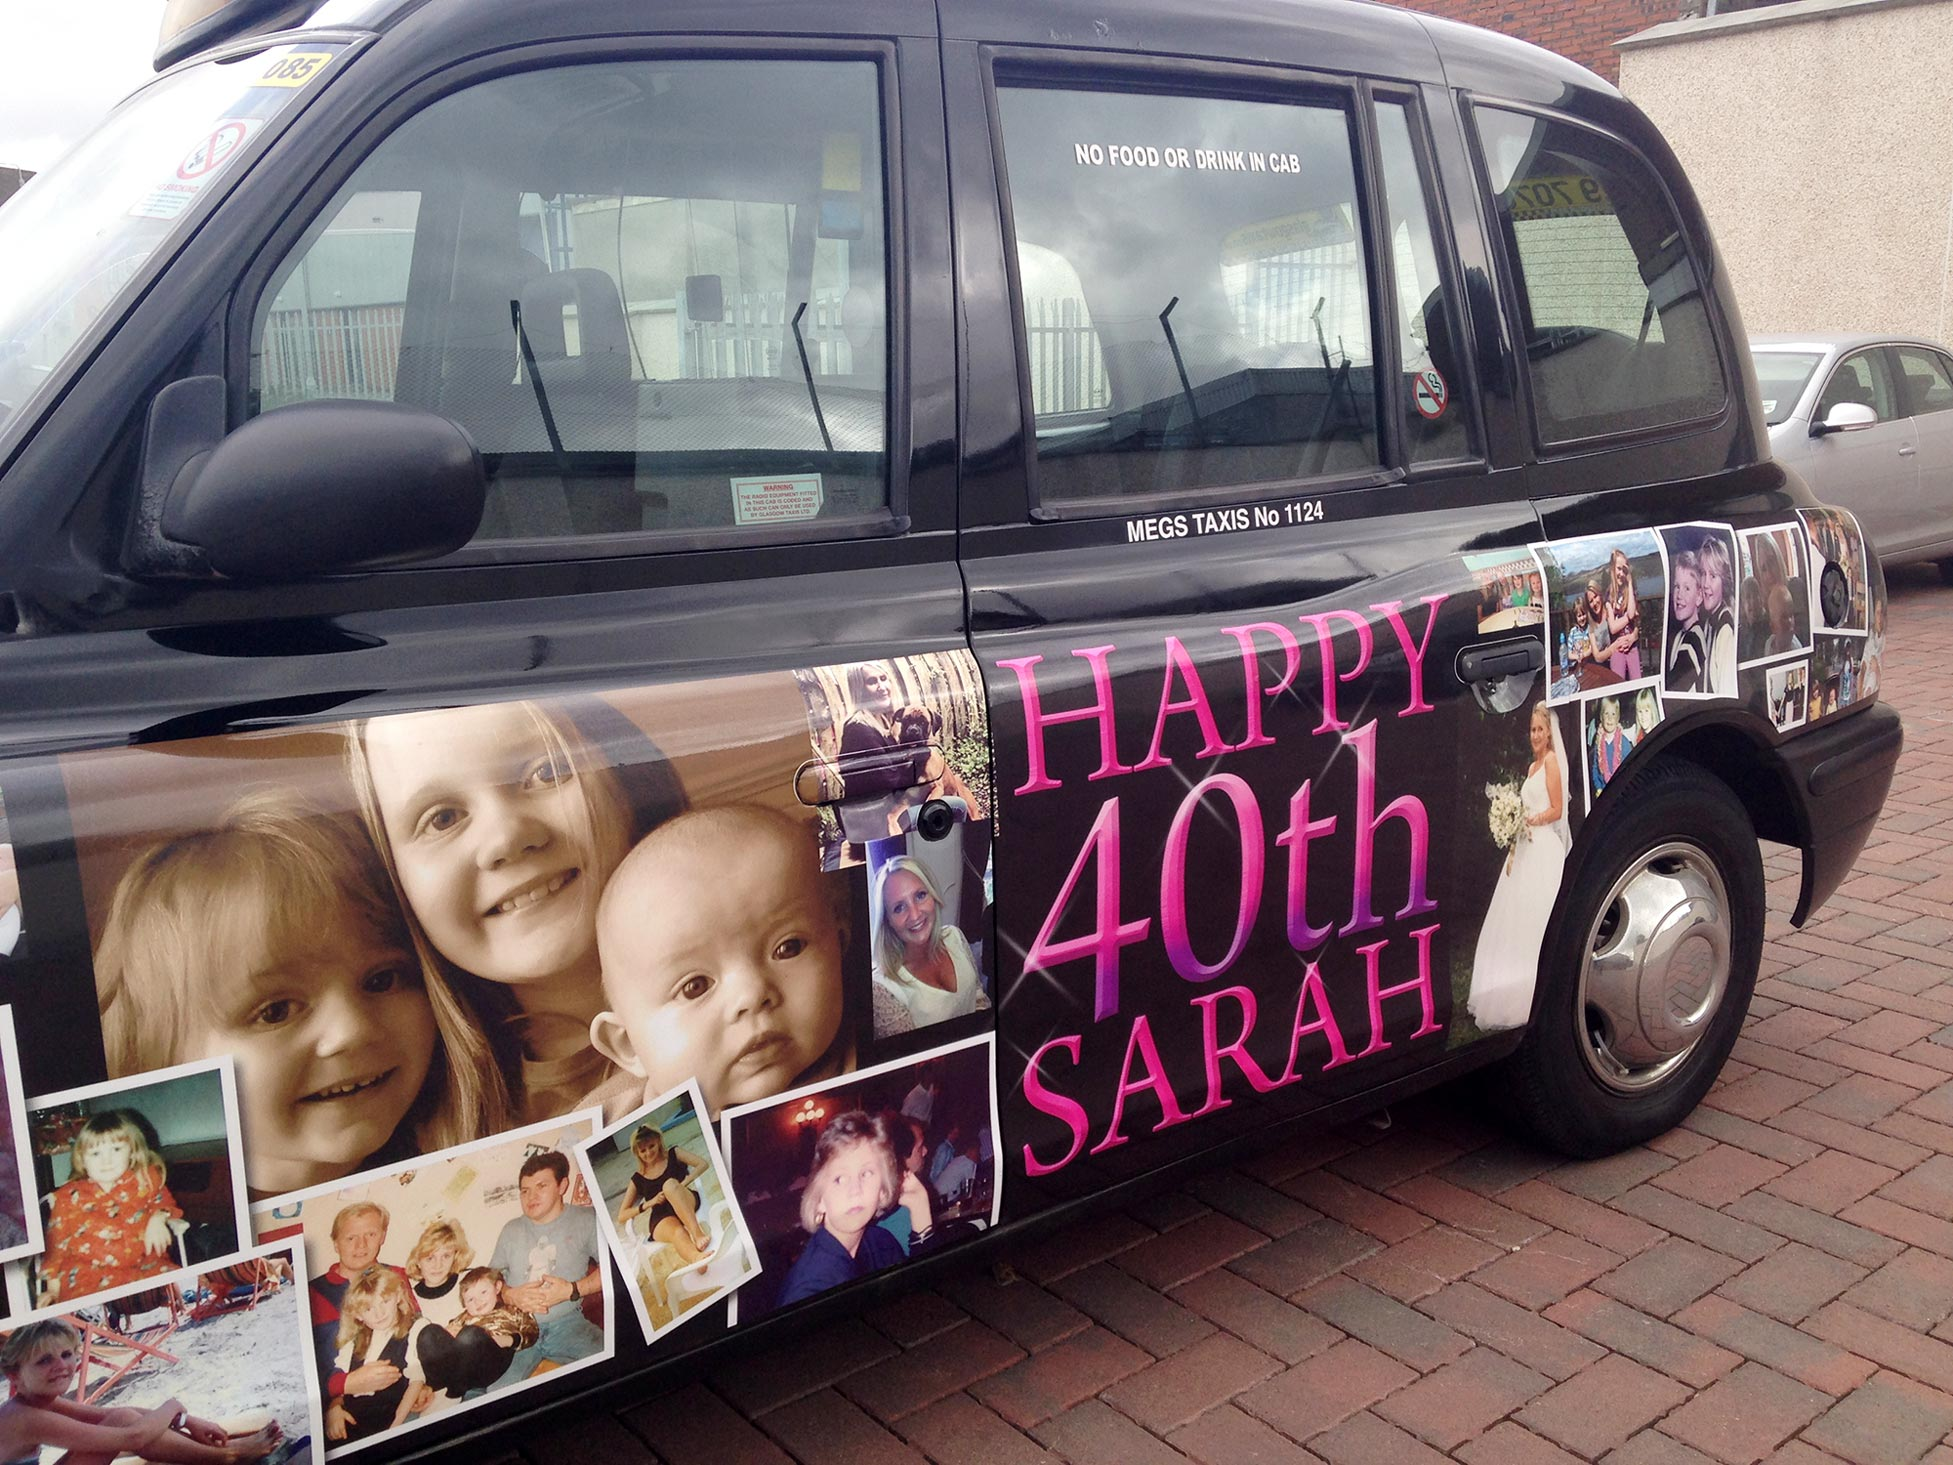 One-off Birthday Message On Taxi Sides (Hired Out For The Day As A Surprise!)